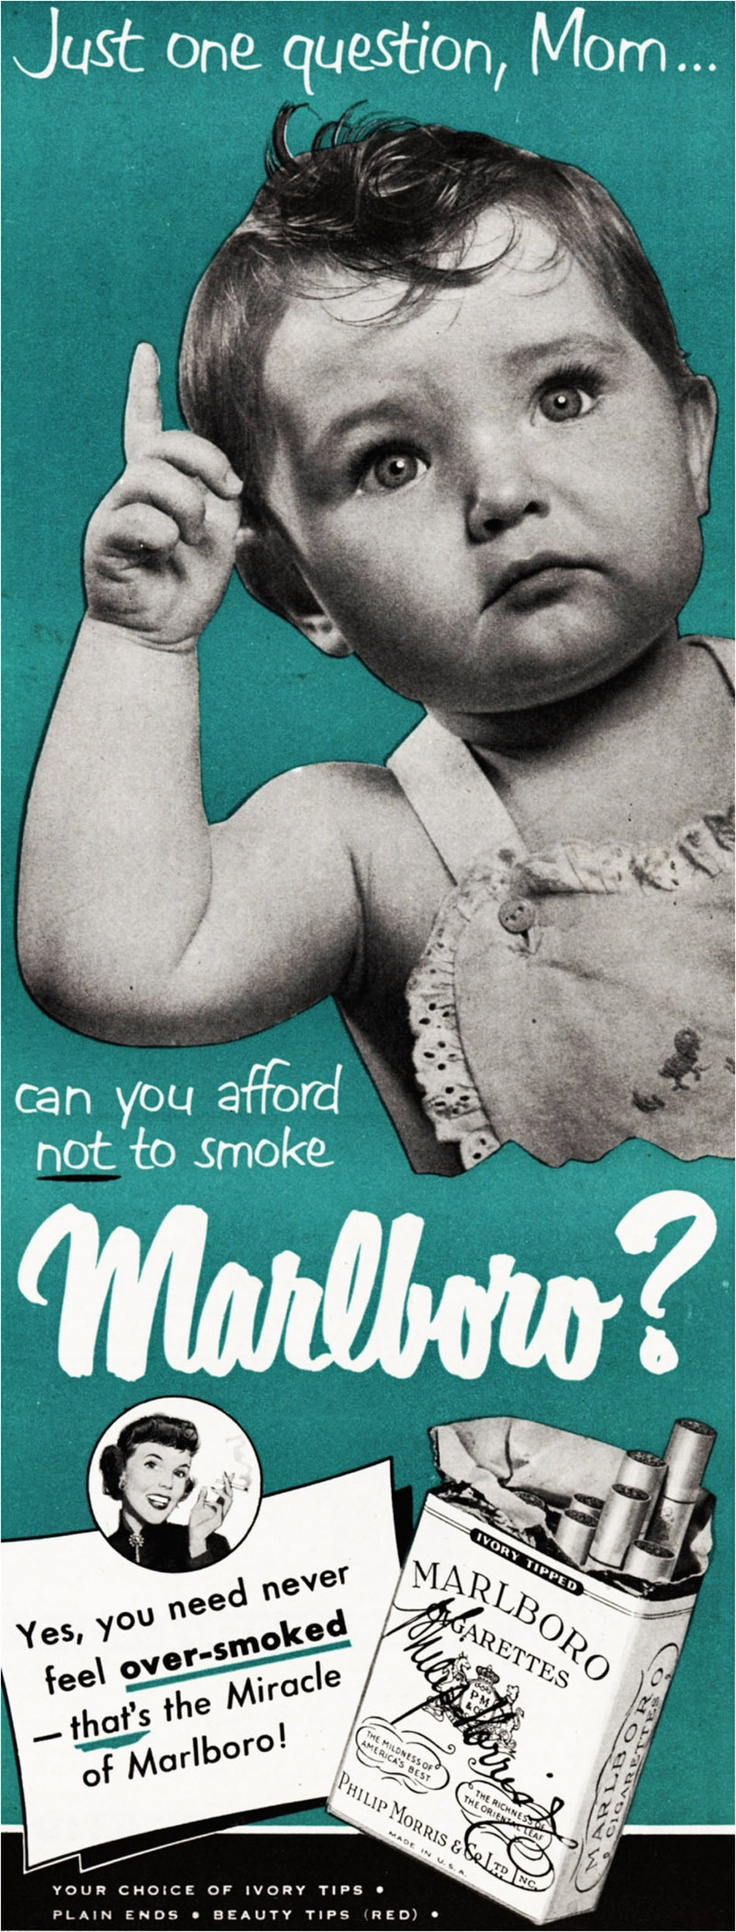 Can You? Can the tobacco cos honestly say that they are not responsible for a generation of cigarette addicts